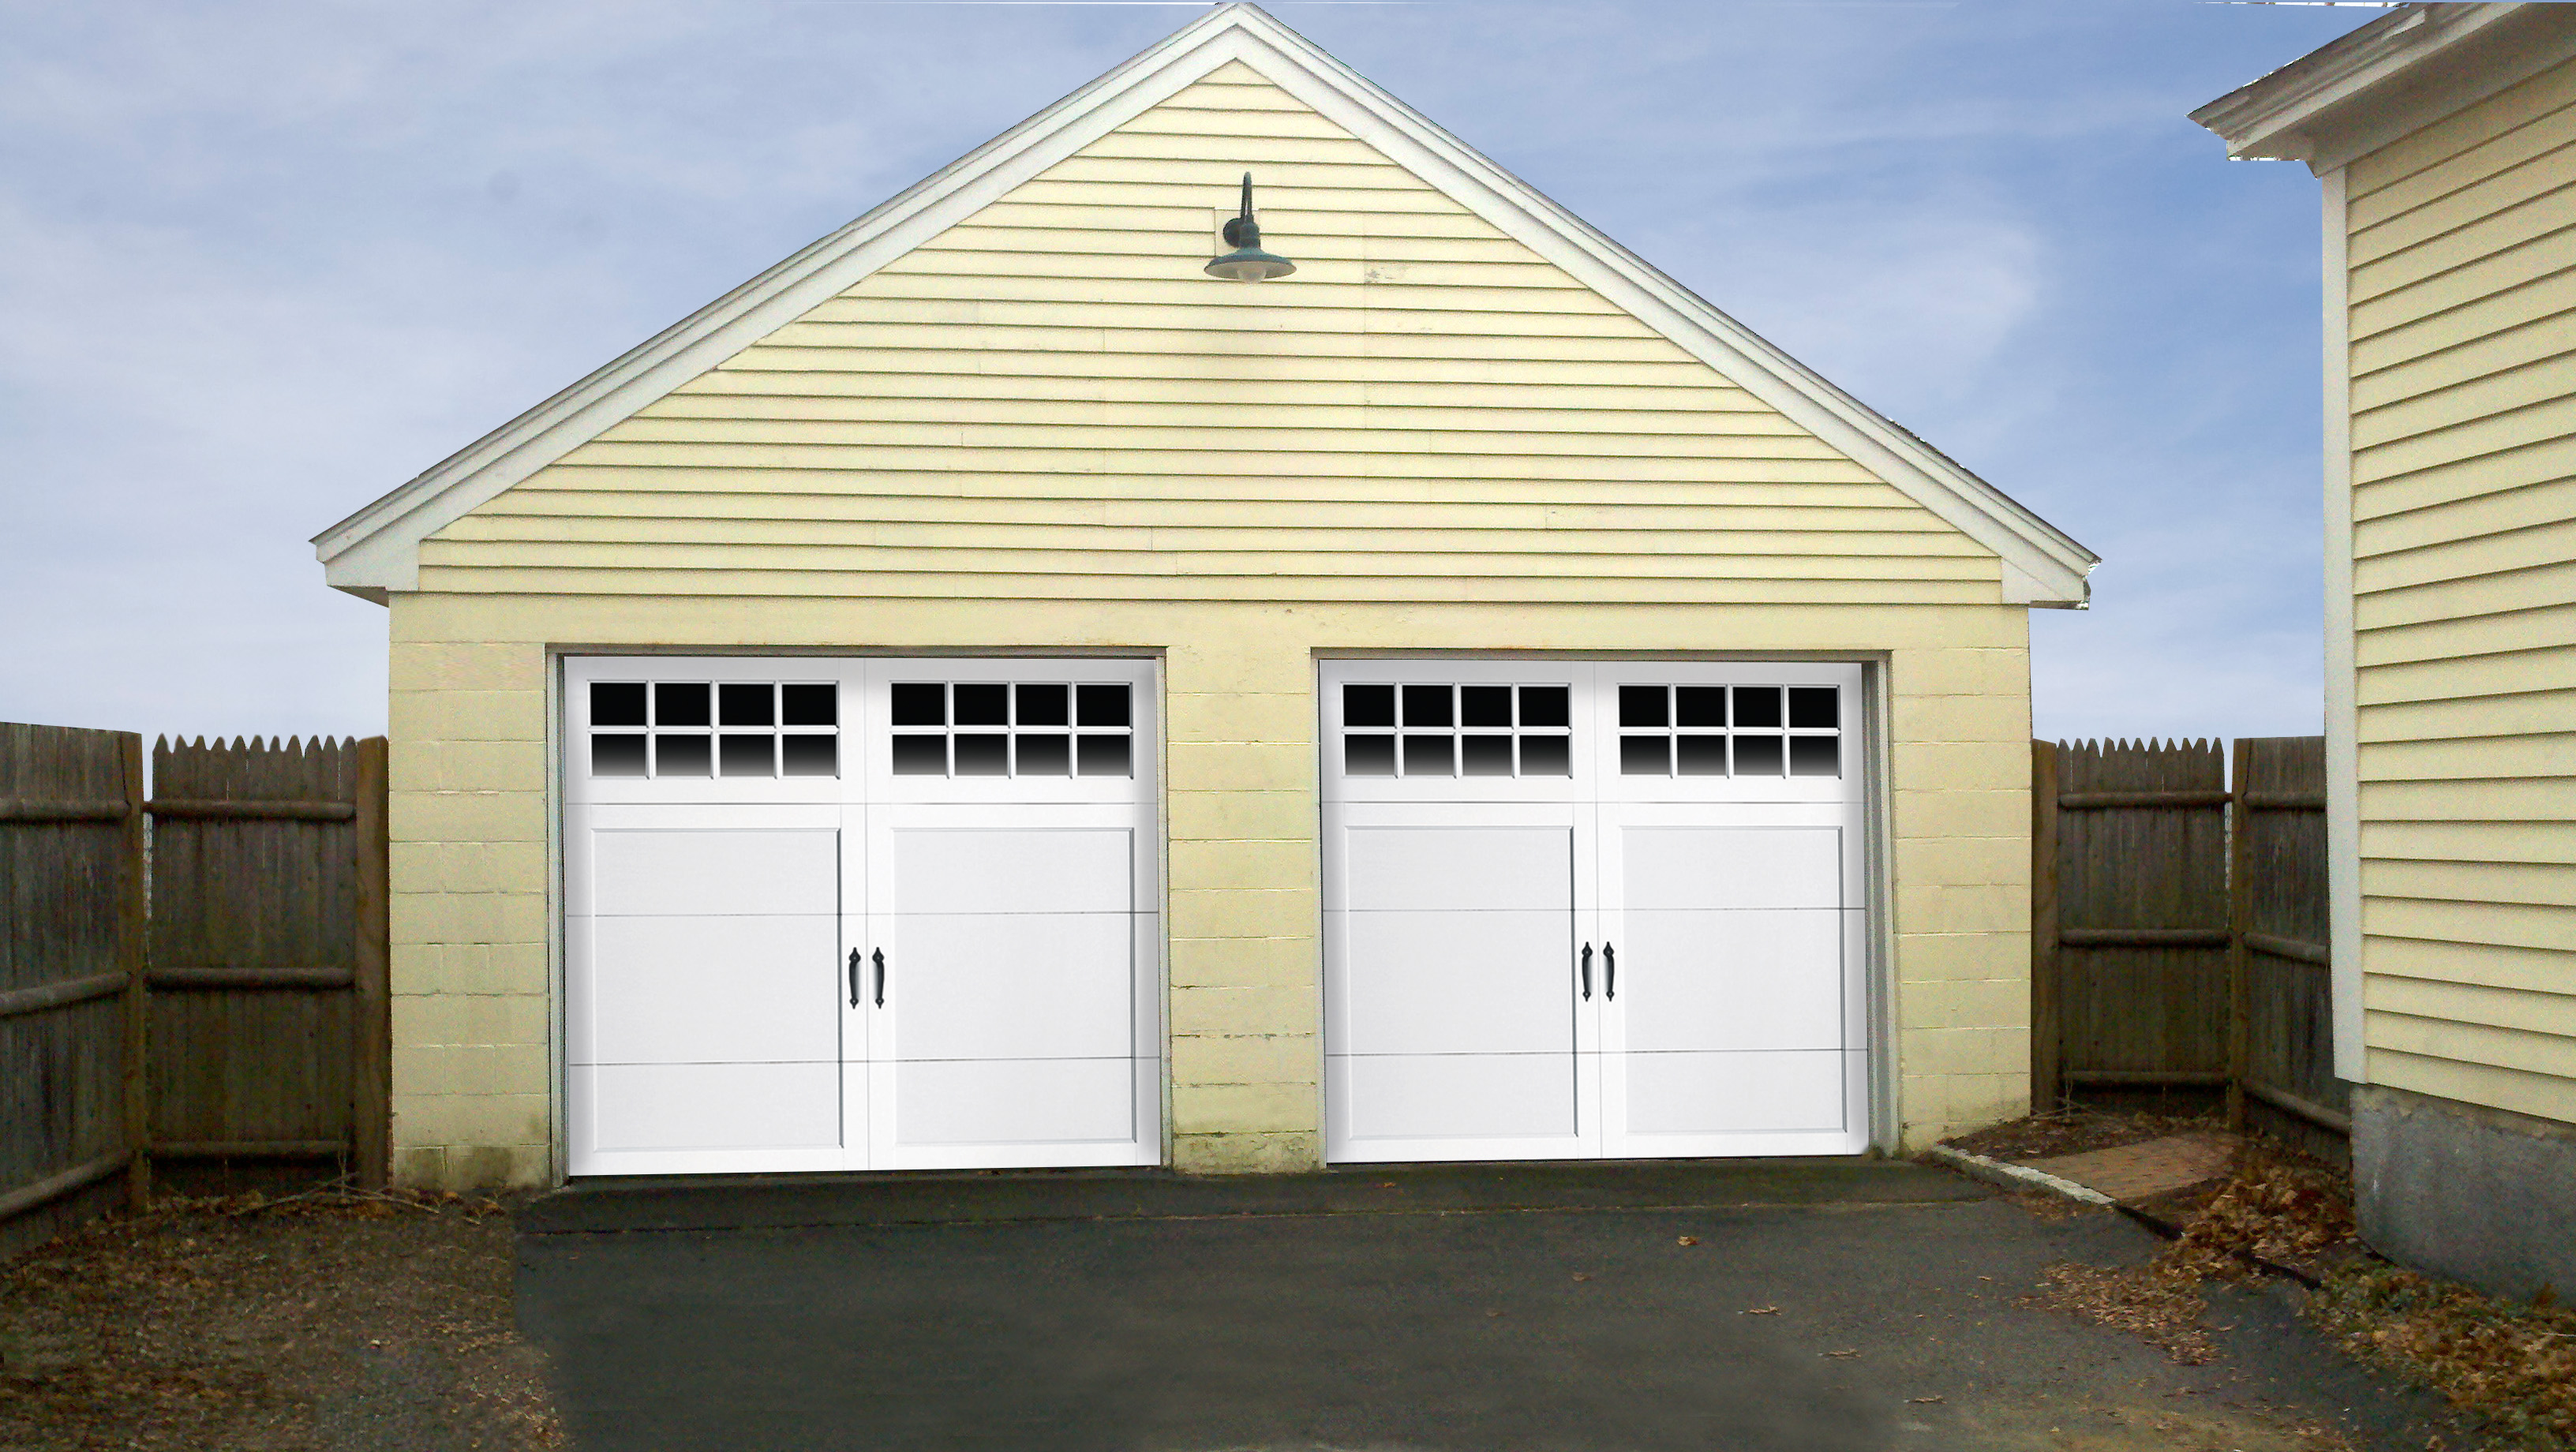 Doors To Garage: Clopay Garage Door Make Over